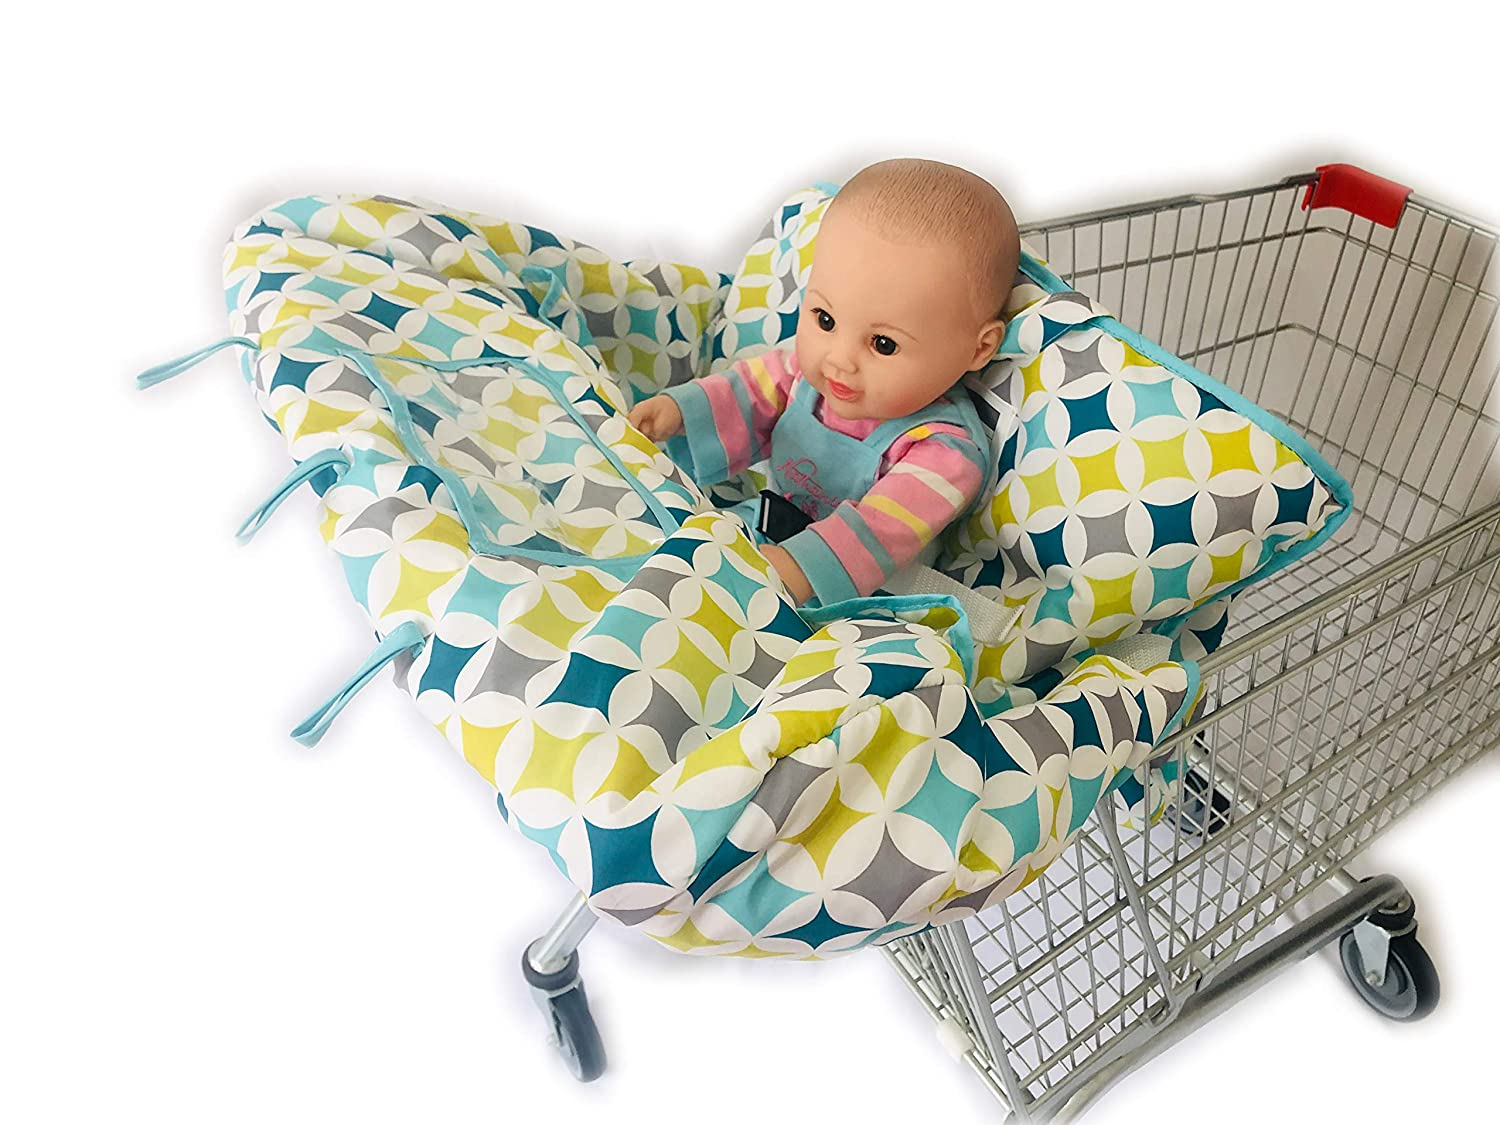 4 Legs Holes Double Babies Shopping Cart Cover for Twin or Baby Siblings. X-Large Size That was Guaranteed to Fit Wholesale Warehouse Grocery Stores (Green 4 or 2 Holes)